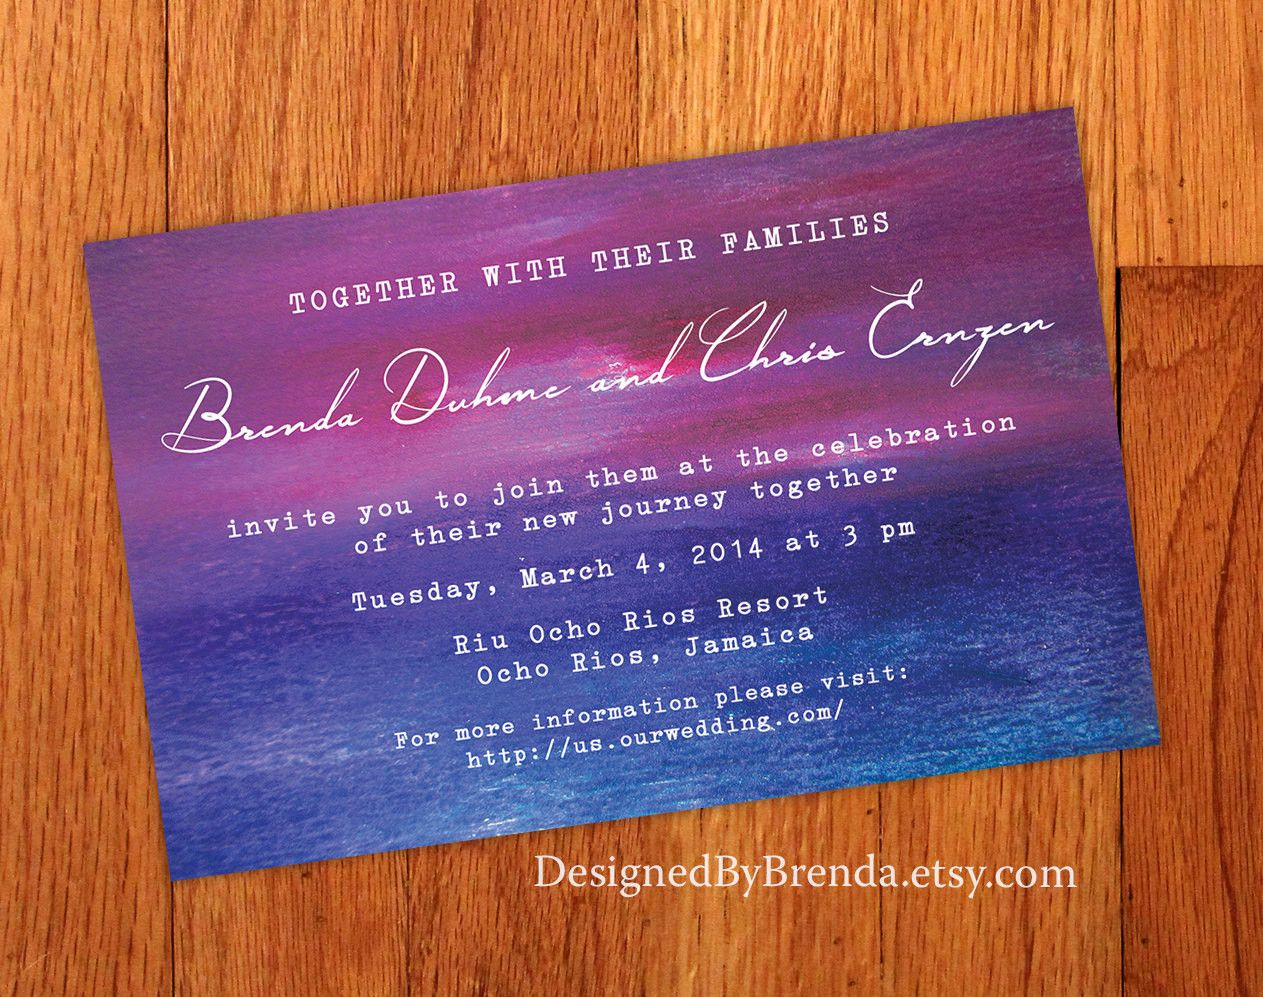 Sunrise Wedding Invitations: Abstract Artistic Wedding Invitation With Faux Painted